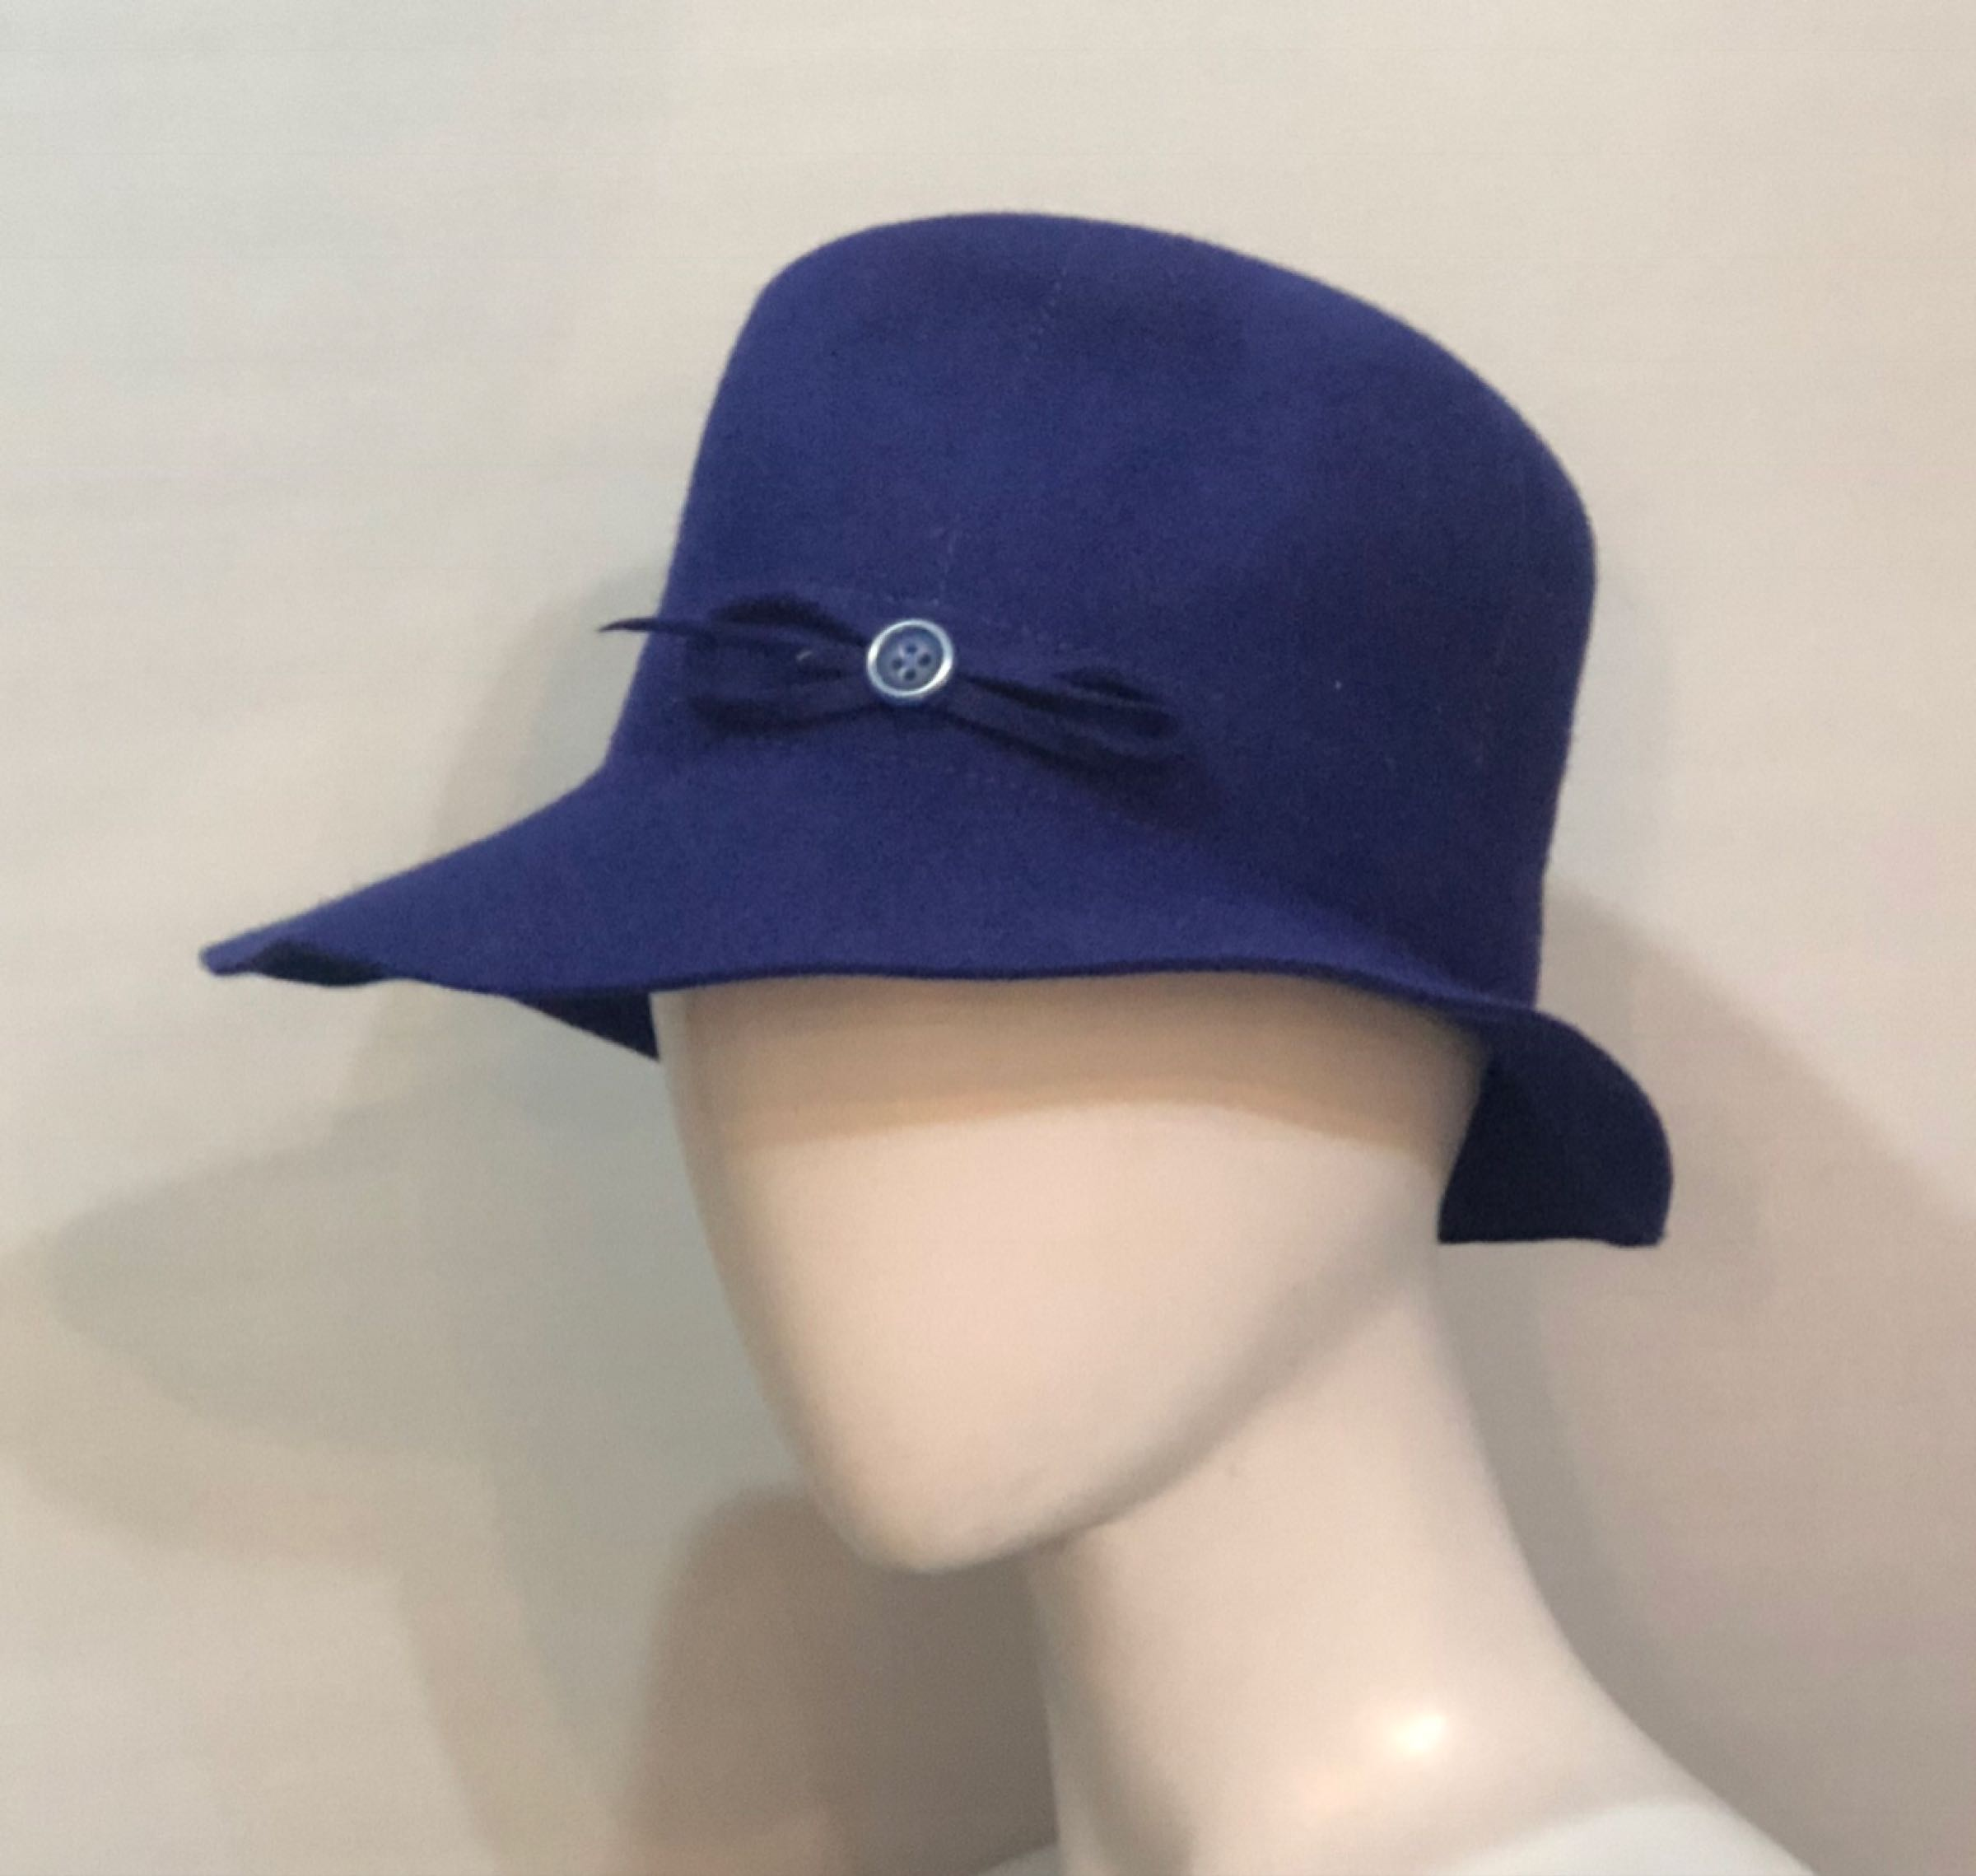 Blue fedora with stitching